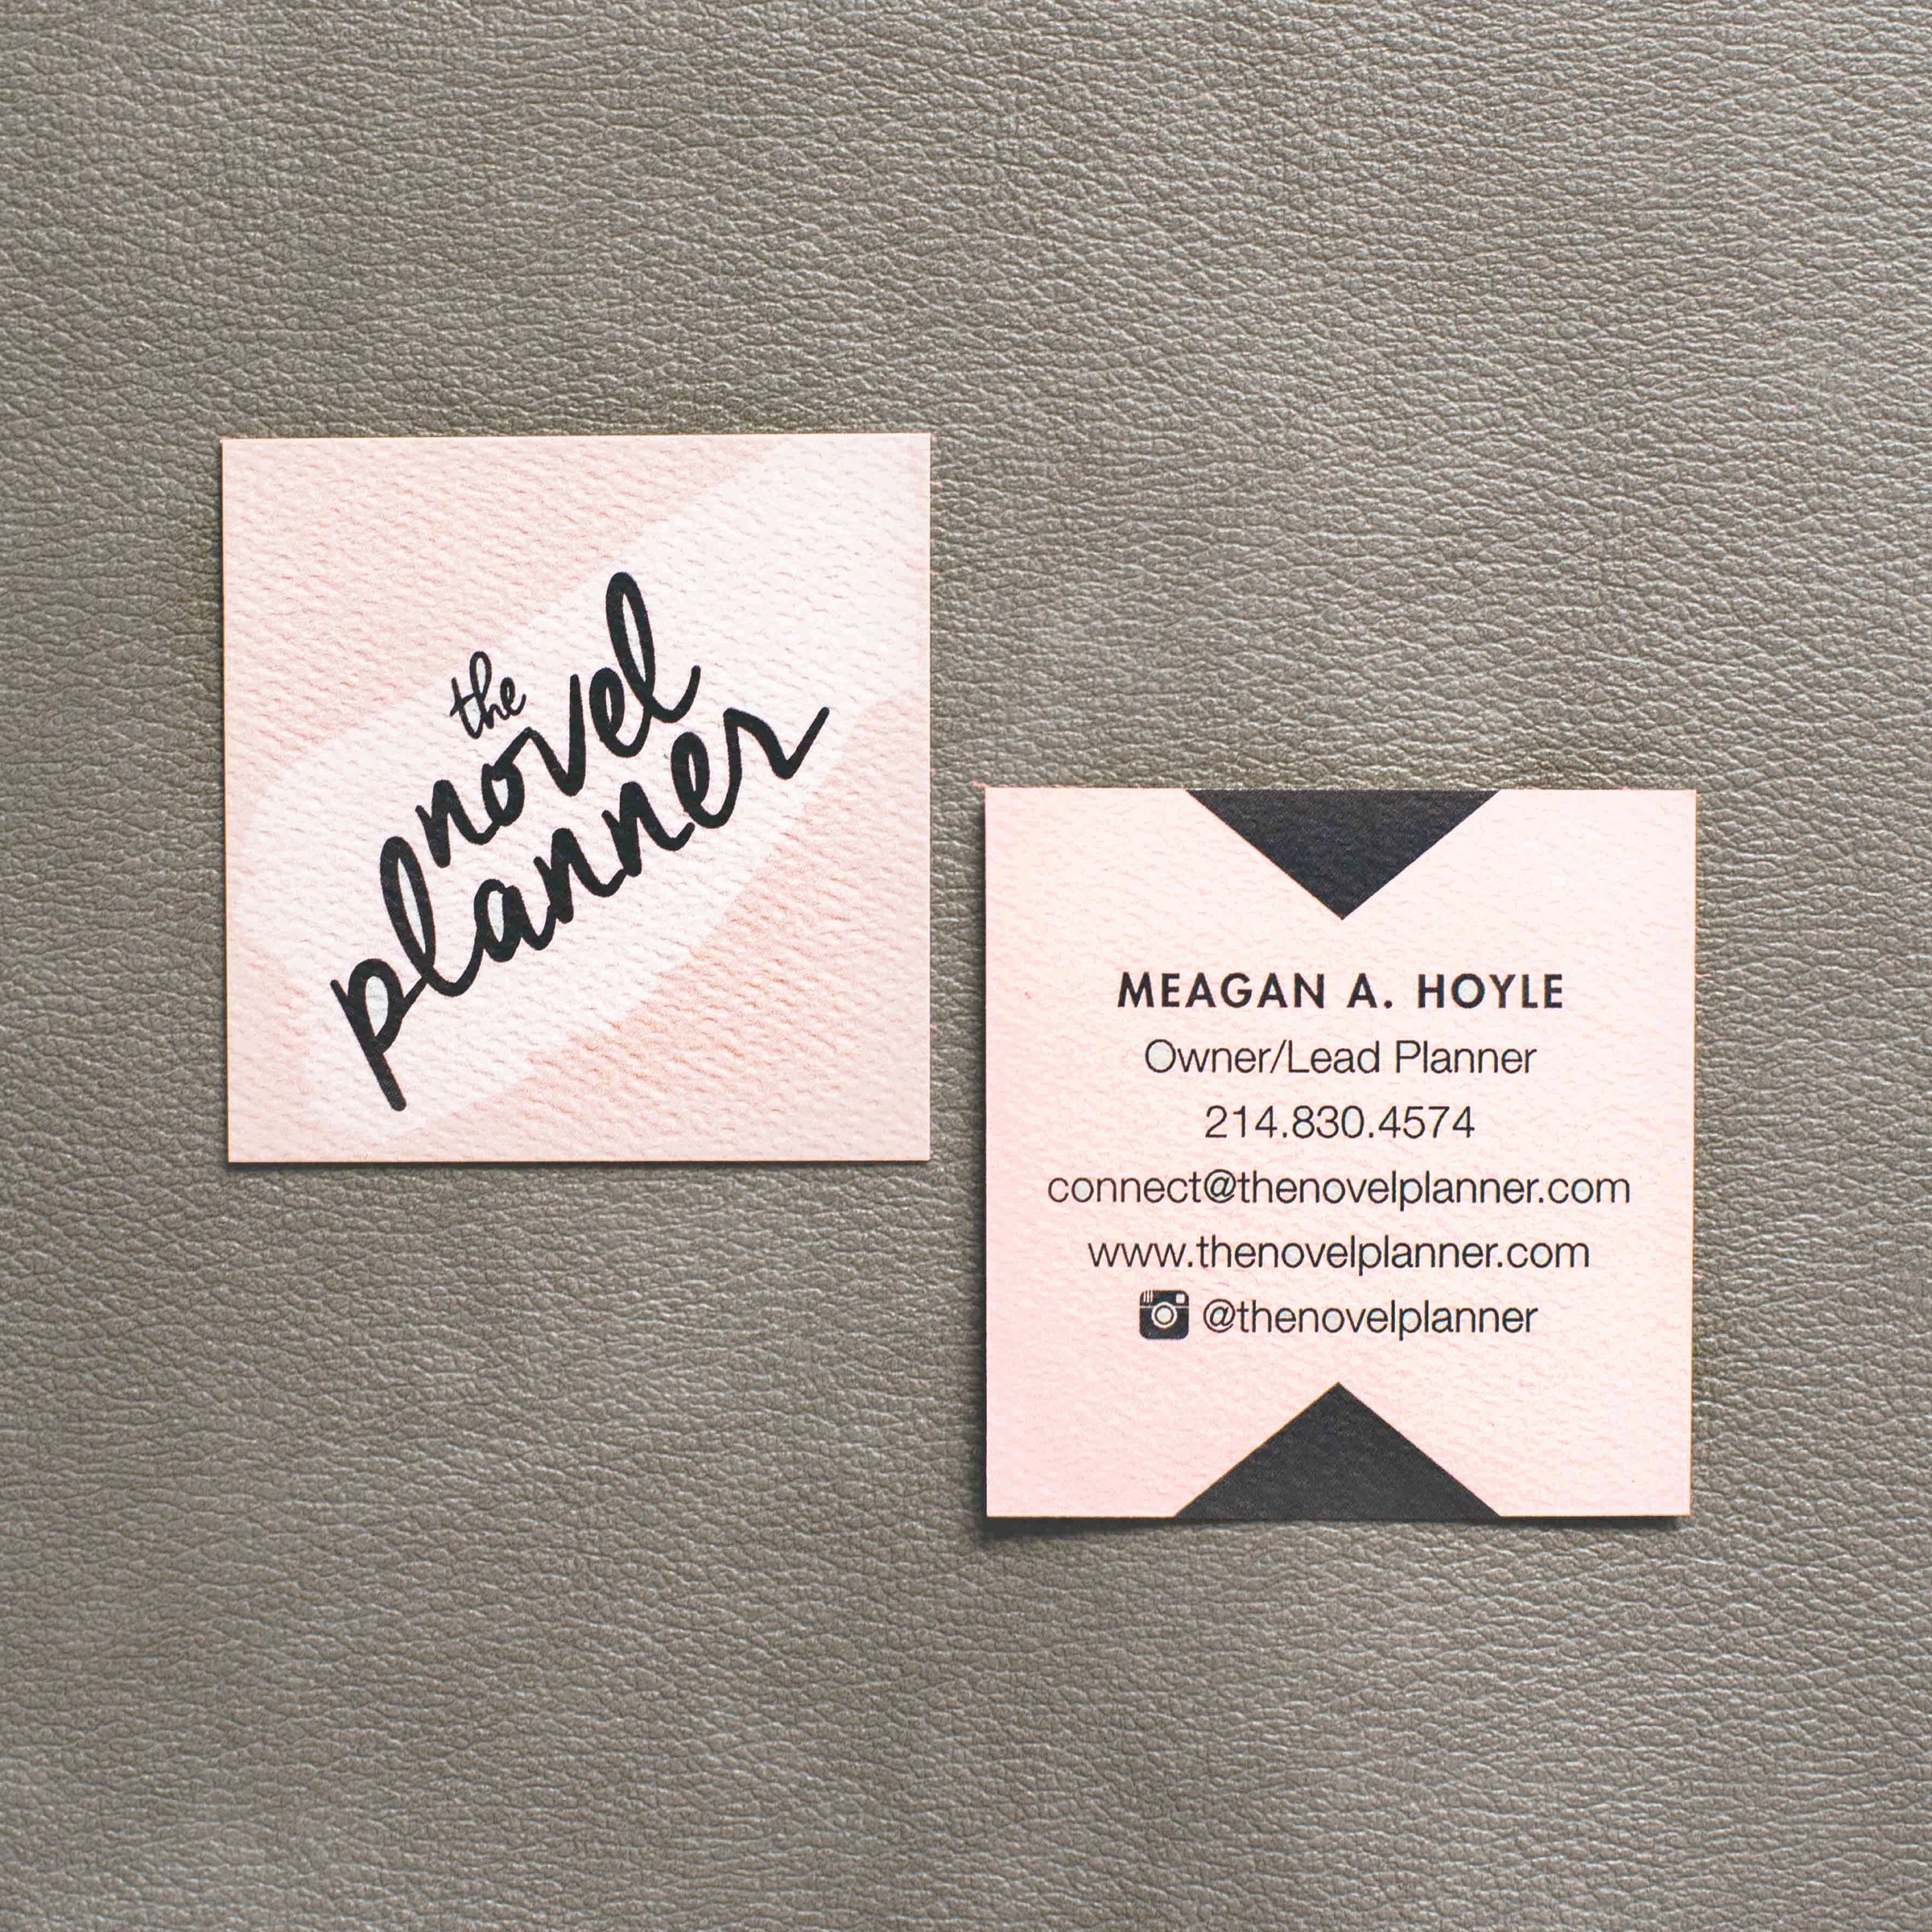 Blush and slate grey square business cards on textured ivory cotton stock, for The Novel Planner.